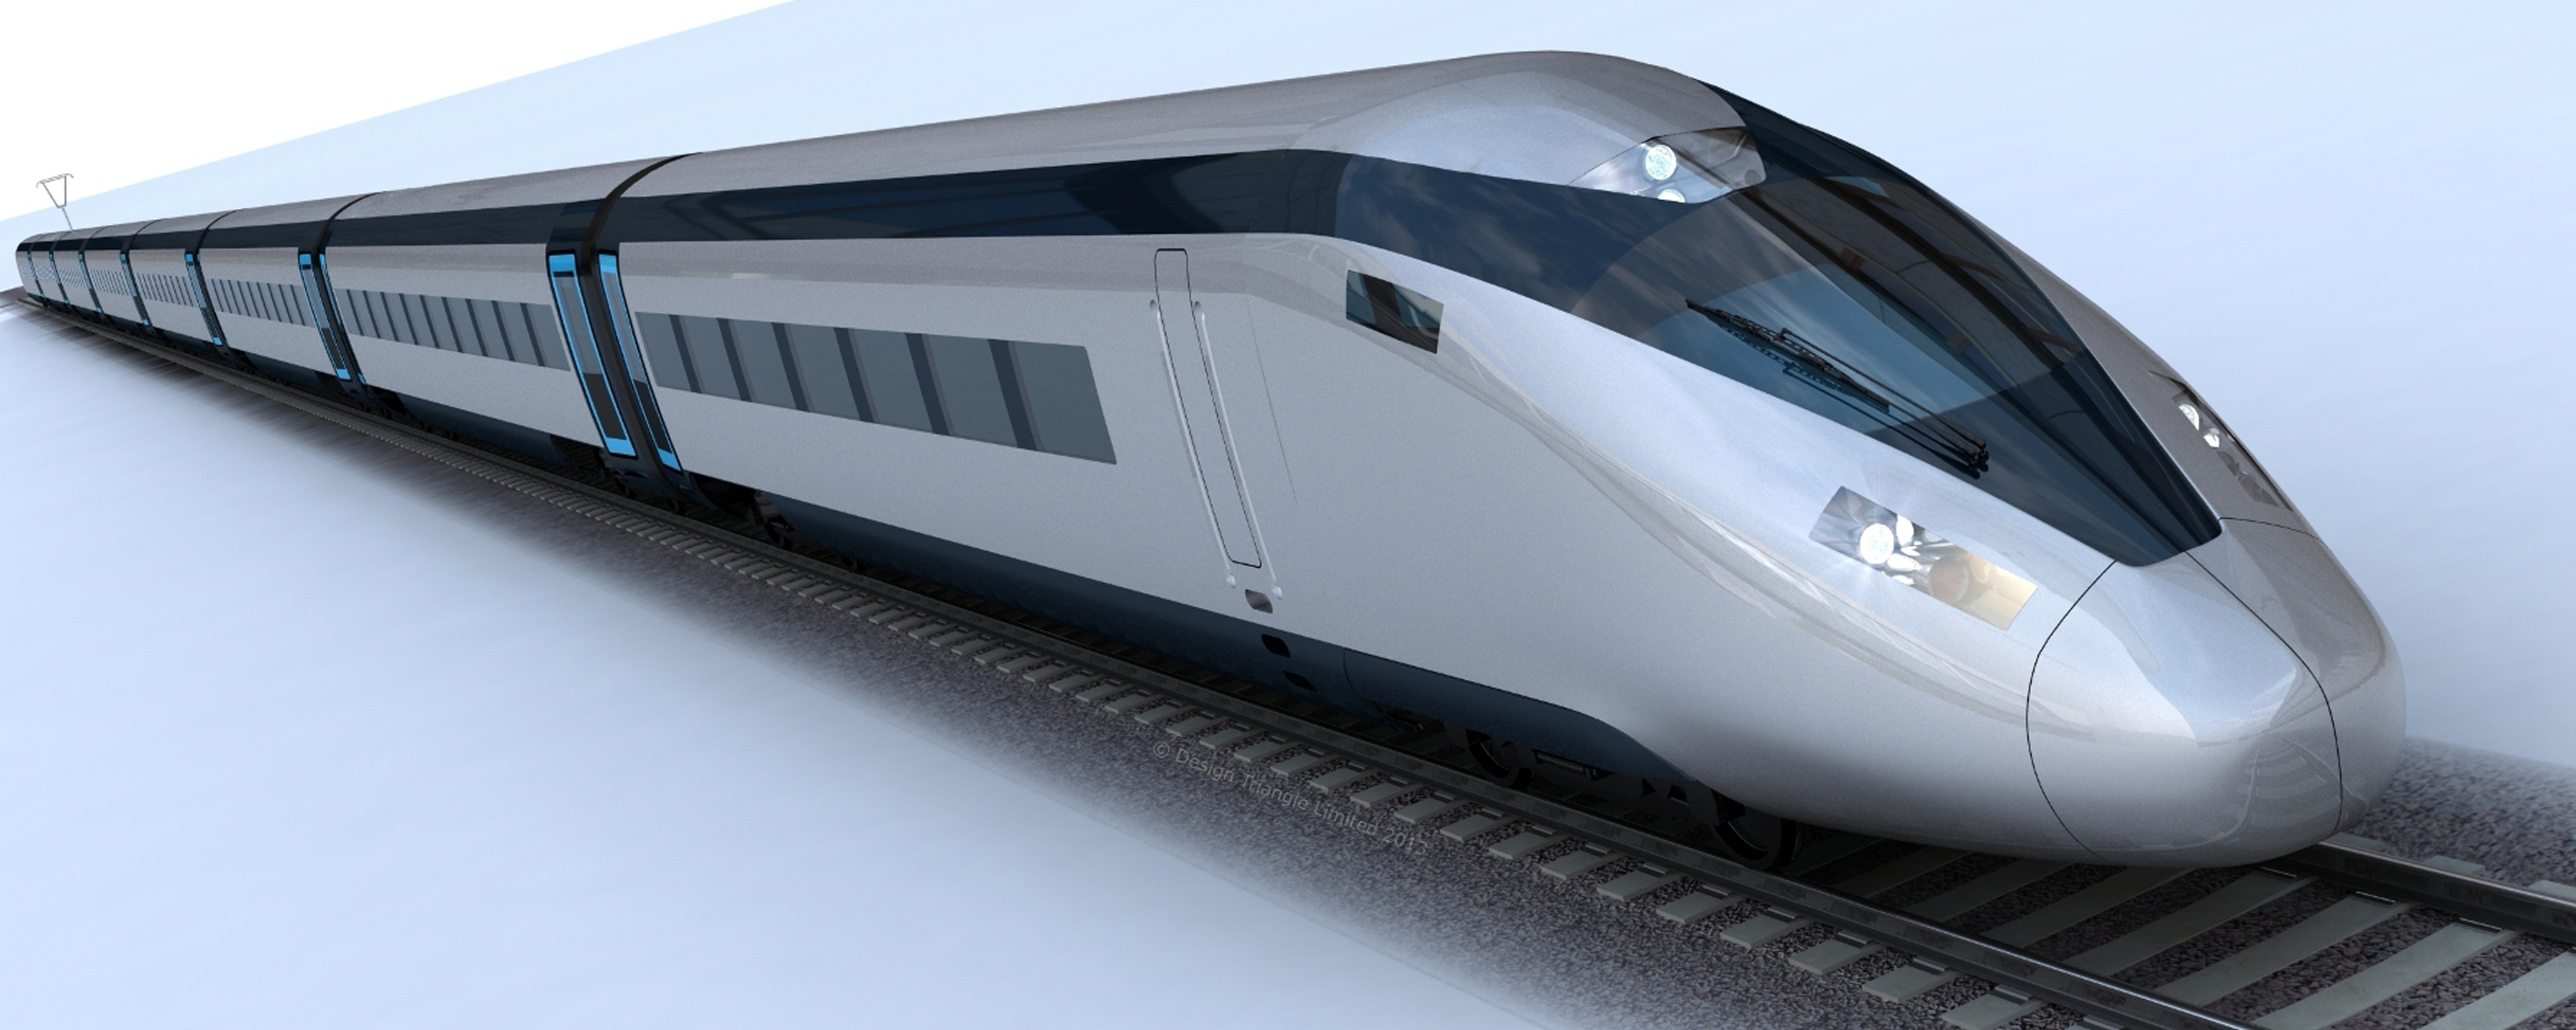 hs 2 and the impact it has The management of the hs2 high-speed rail link has warned that their  the  person said it was too early to know the precise impact of hs2 on.